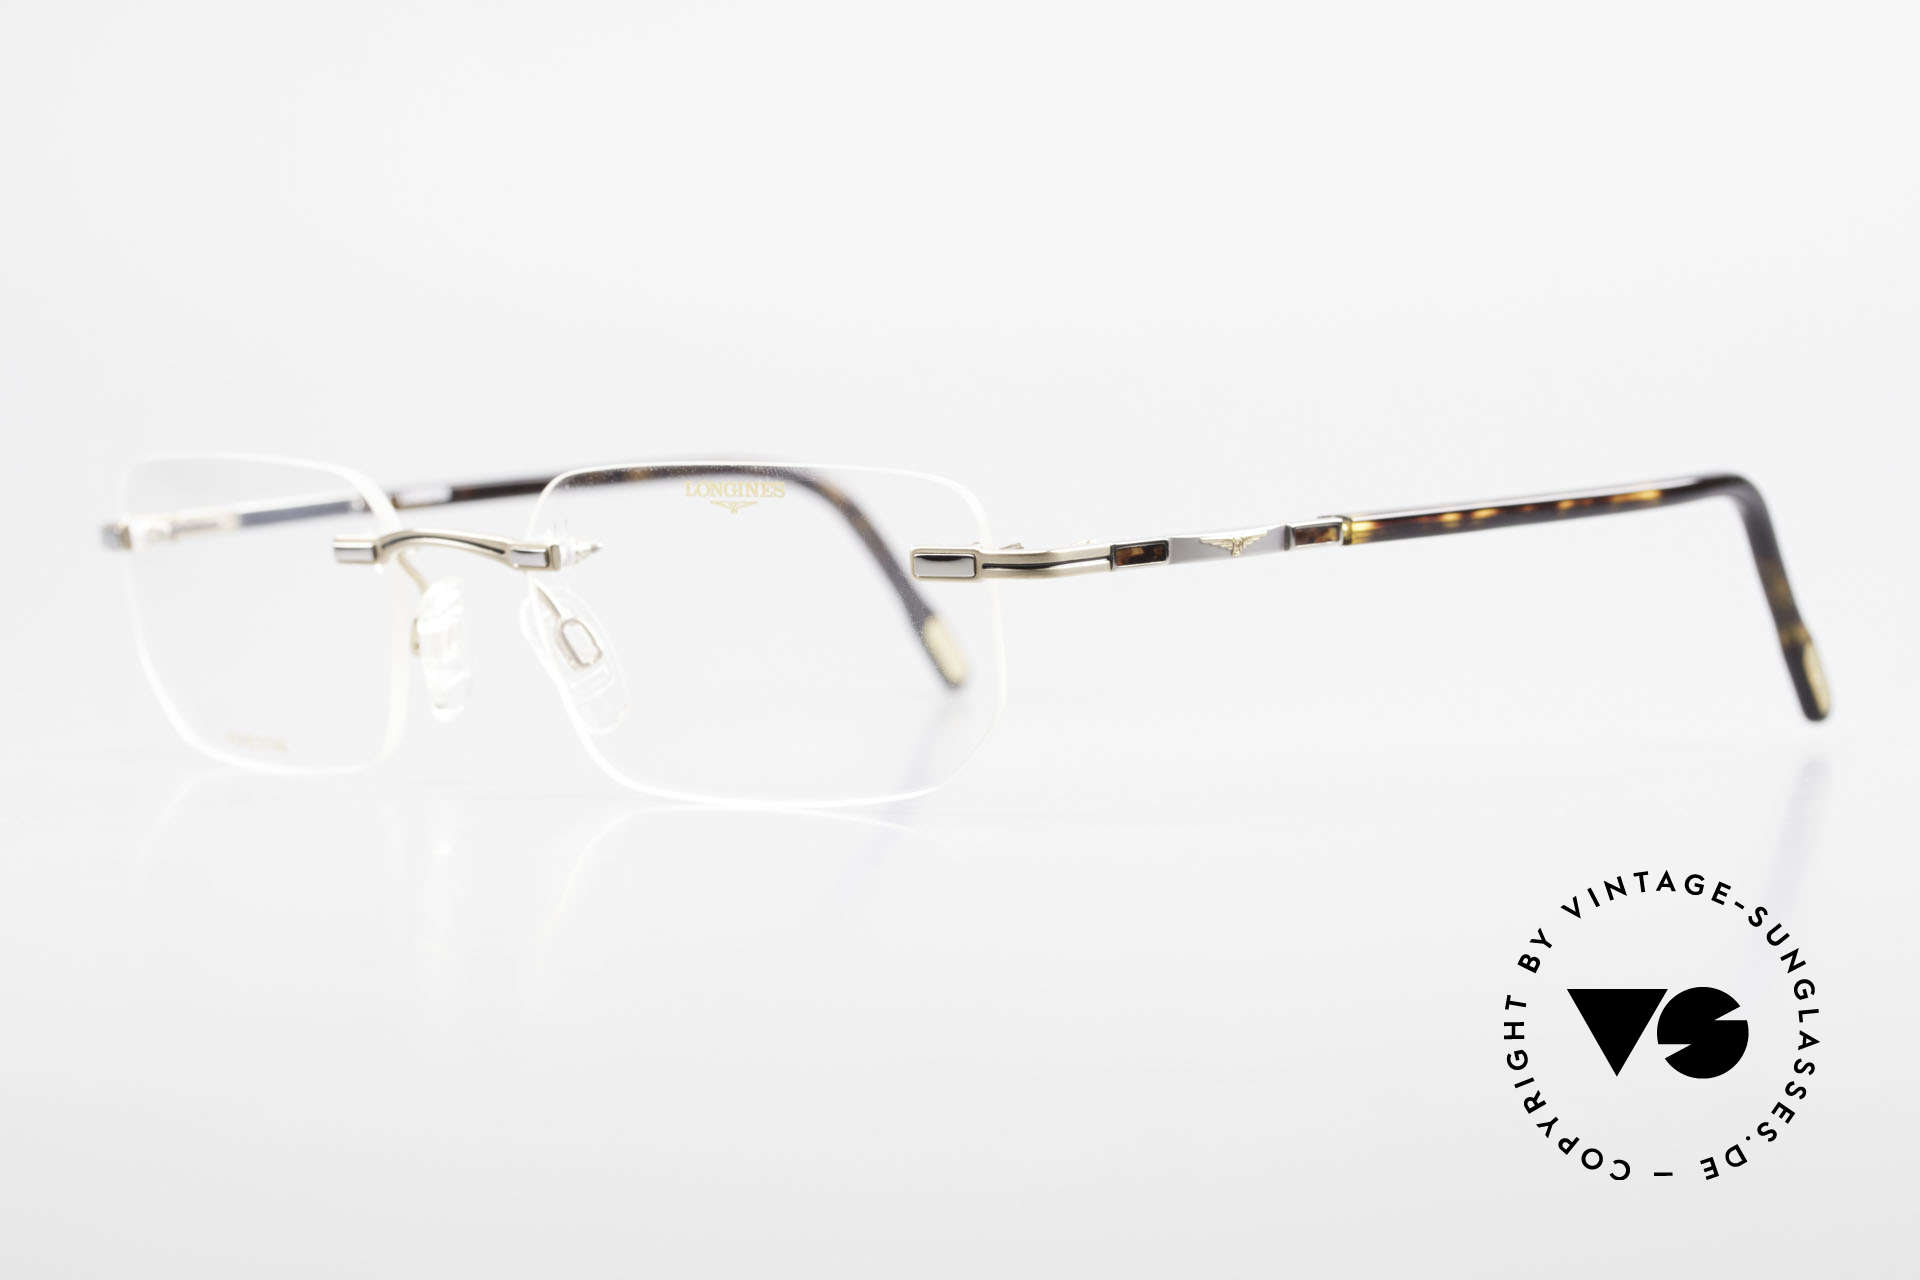 Longines 4238 90's Rimless Glasses Pure Titan, a timeless OLD ORIGINAL in titan/gold and tortoise, Made for Men